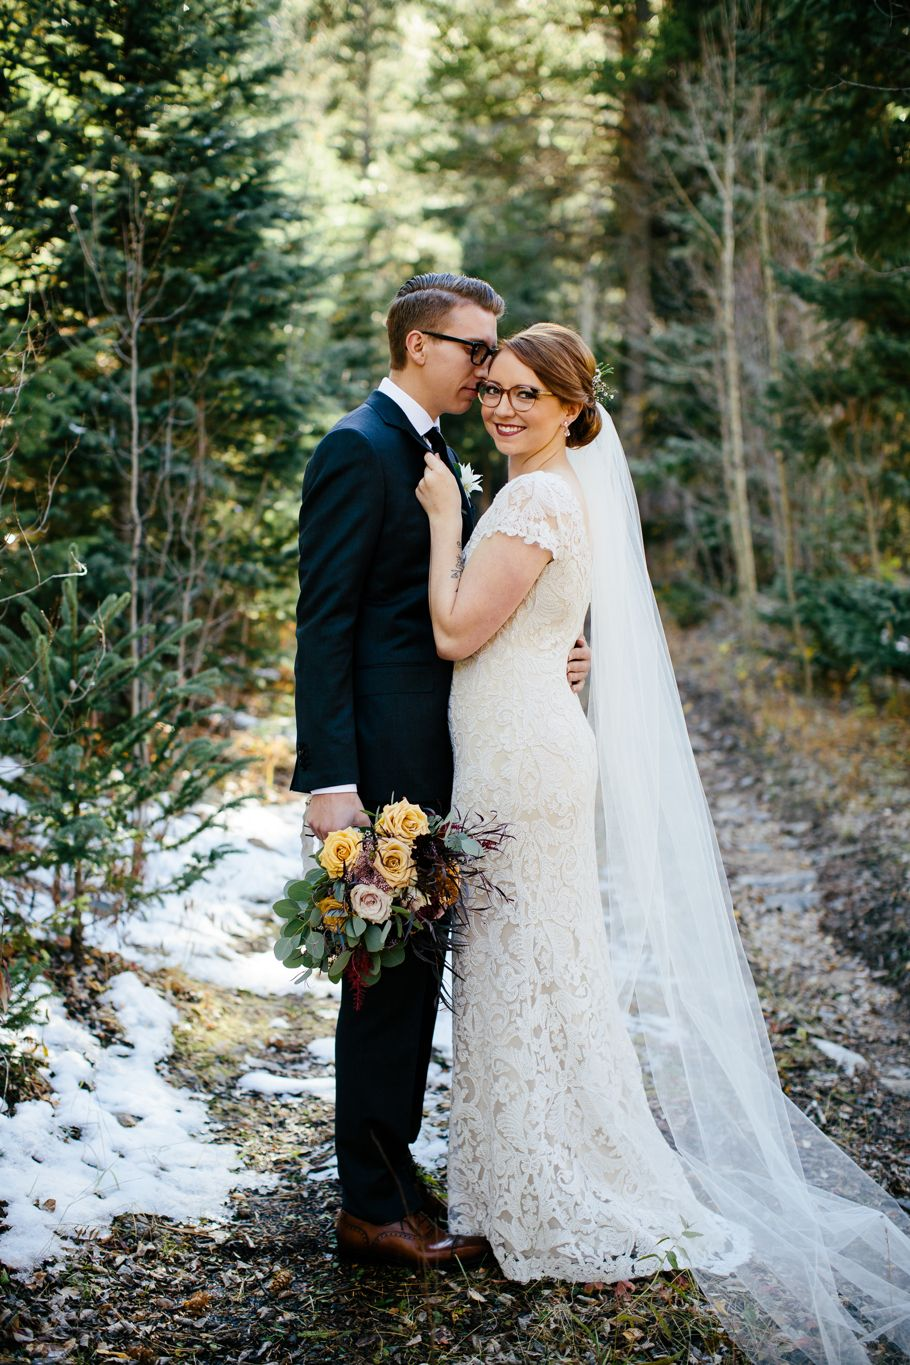 Colorado Wedding Photographer 100 Layer Cake Real Idaho Springs Blackstone Rivers